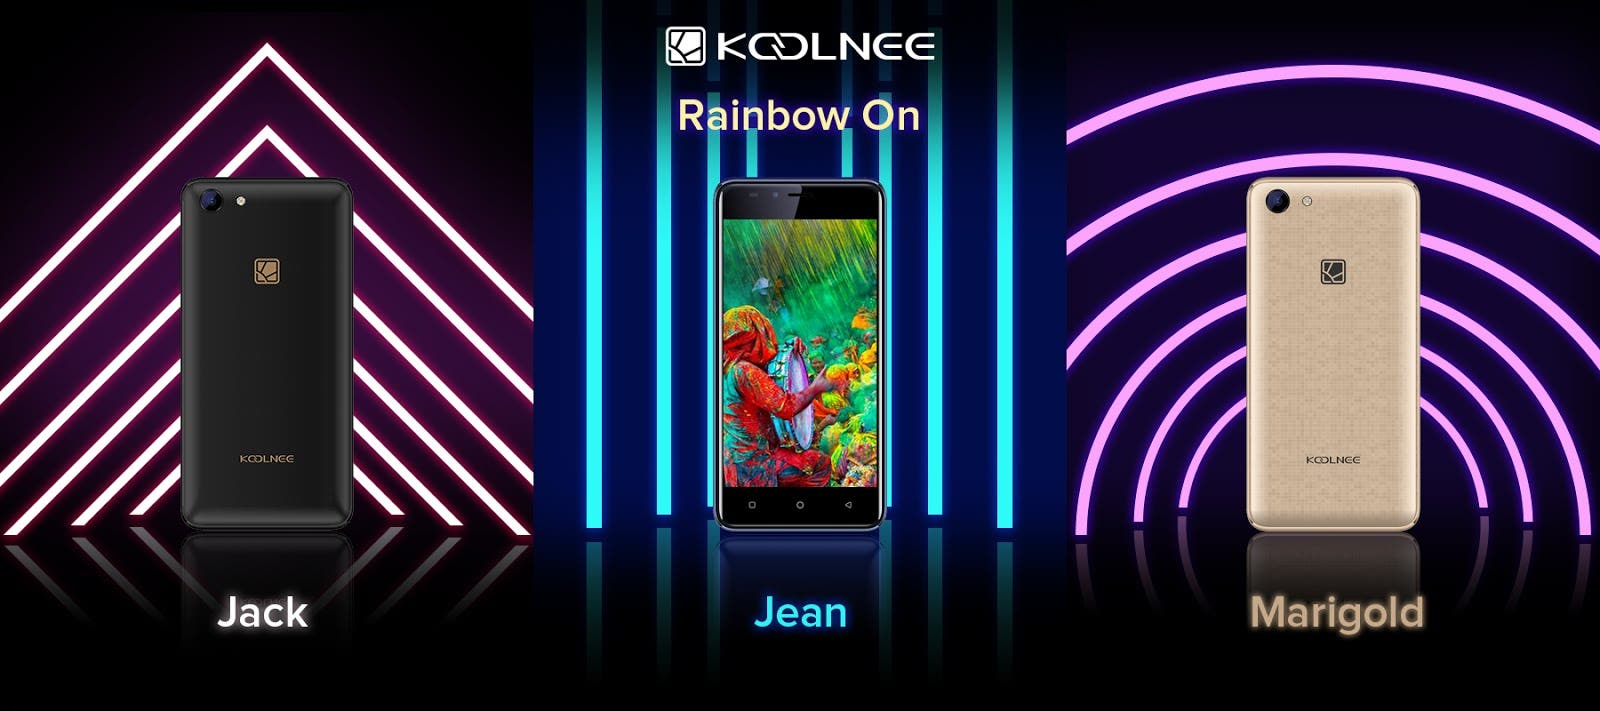 Koolnee Rainbow